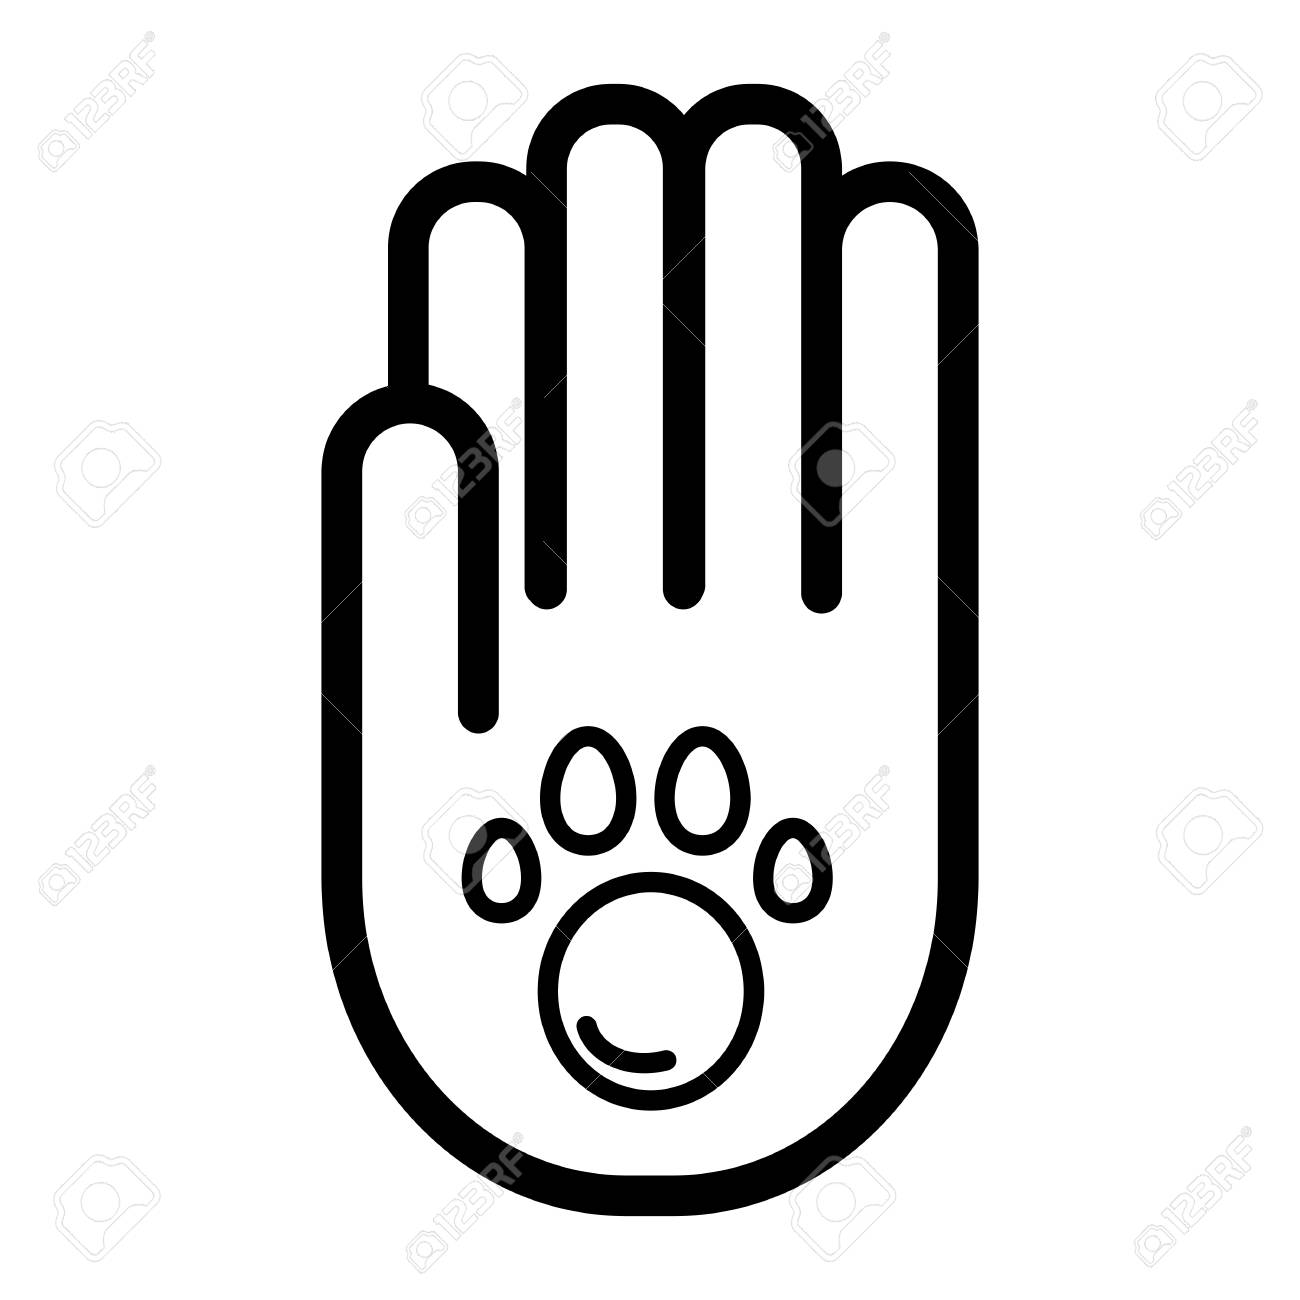 Human hand and paw inside simple vector icon  Black and white